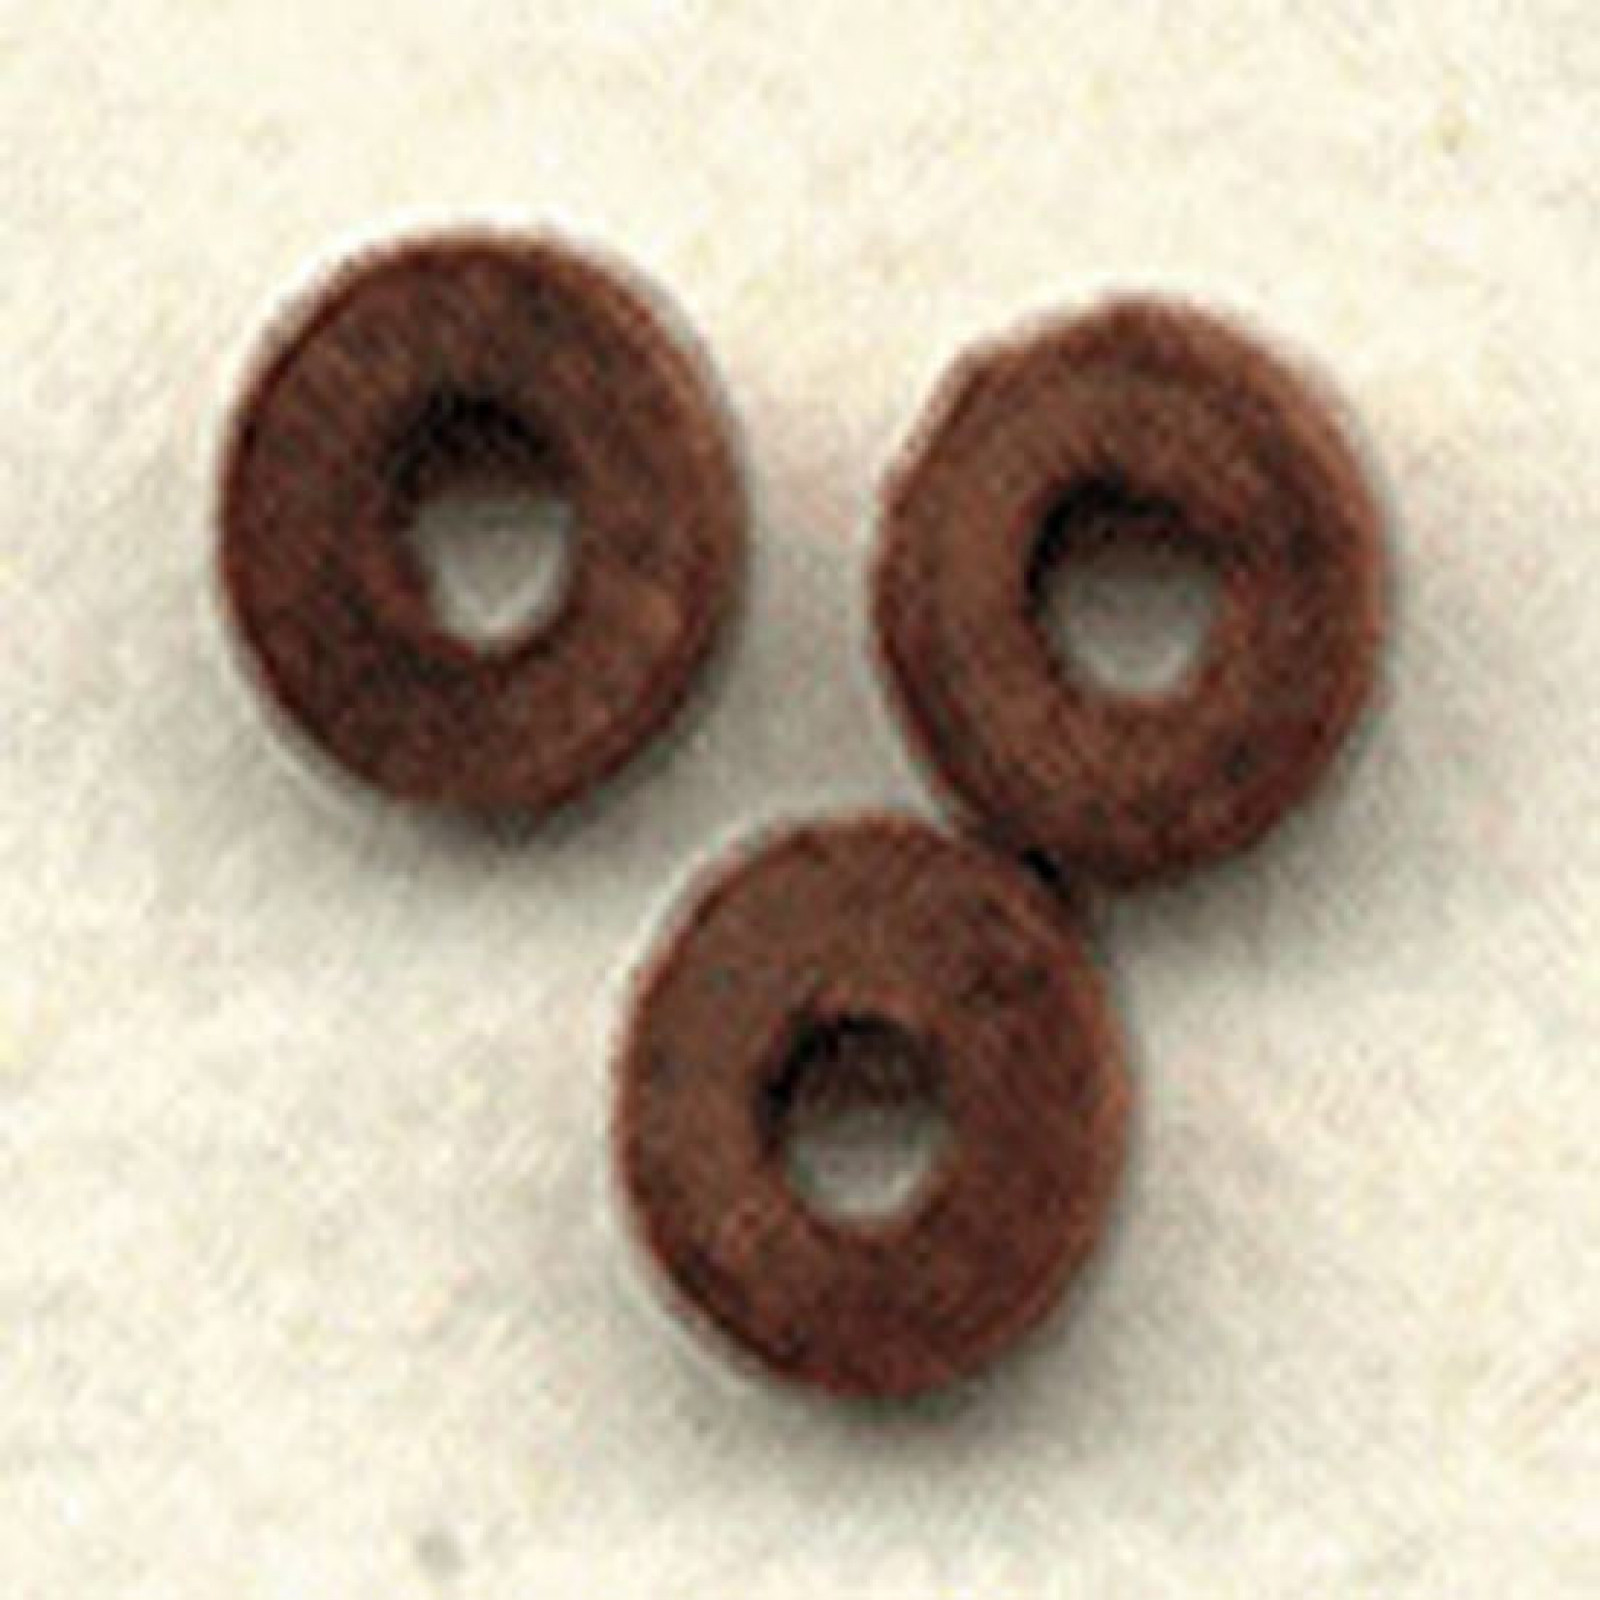 CANNON WHEELS (TRUCKS) 5/32 (4MM) 12/ PAK